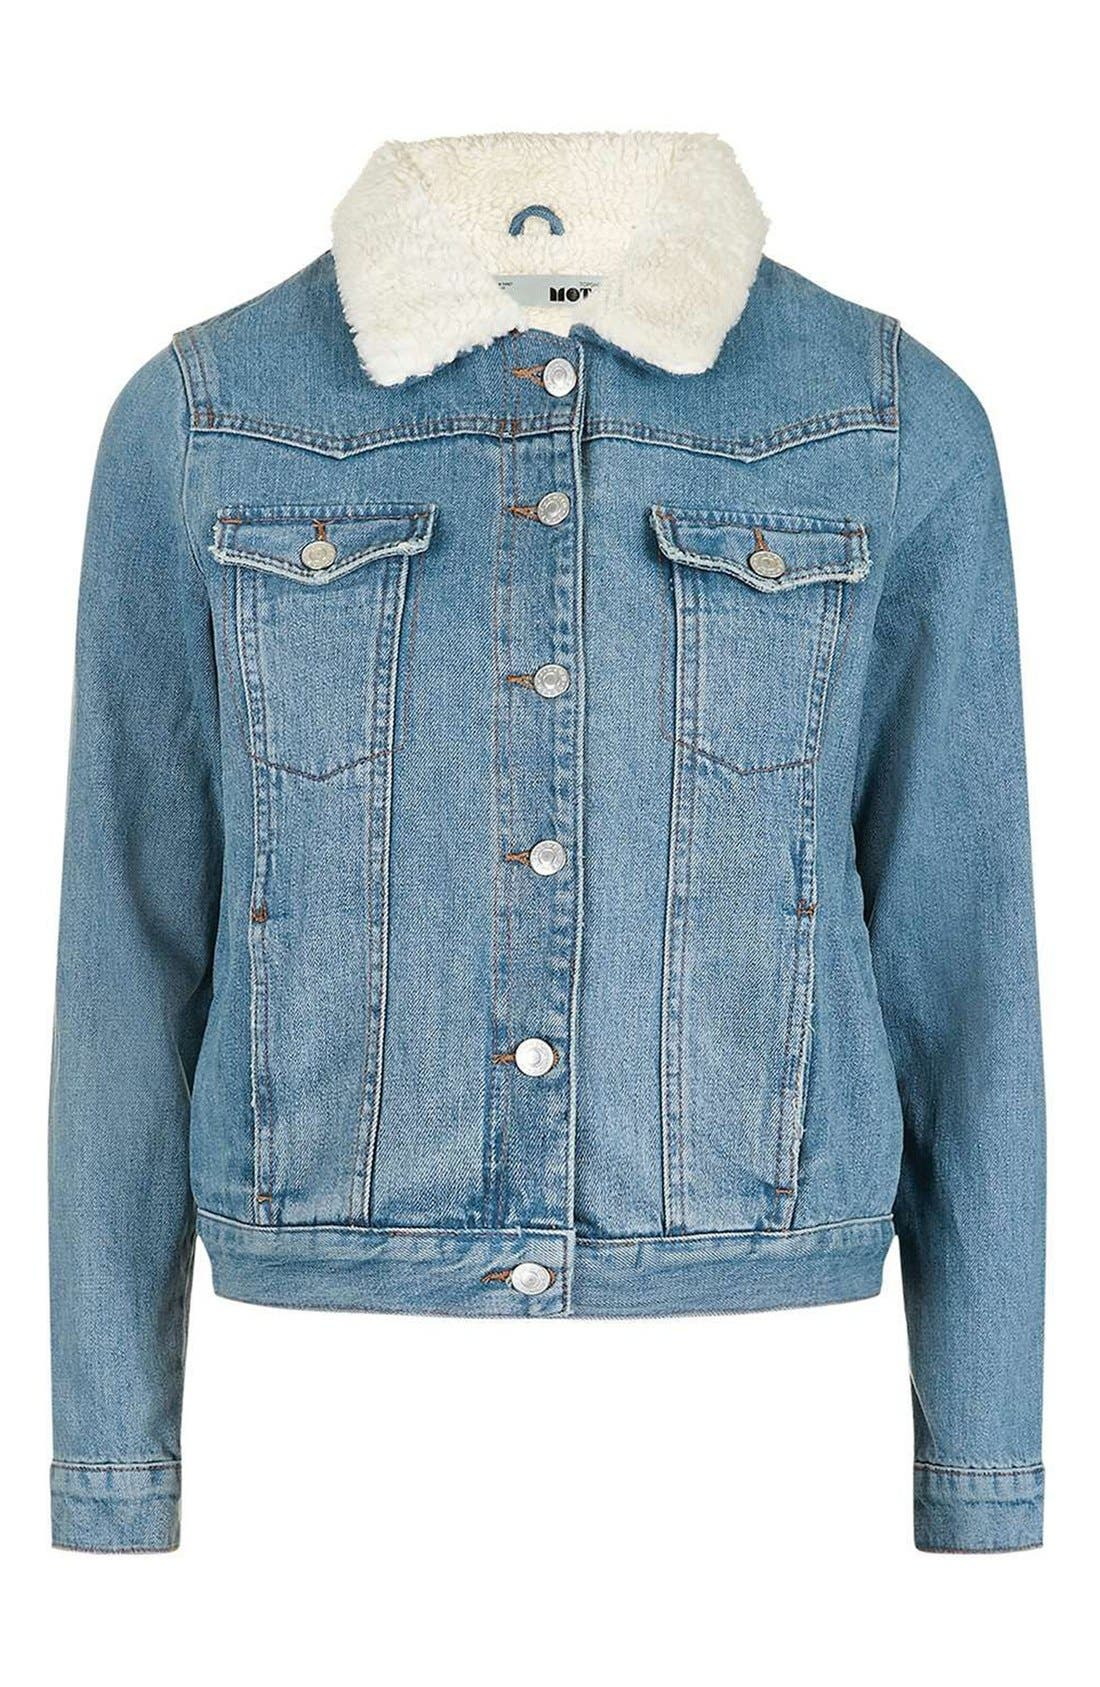 Alternate Image 4  - Topshop Denim Jacket with Faux Shearling Lining